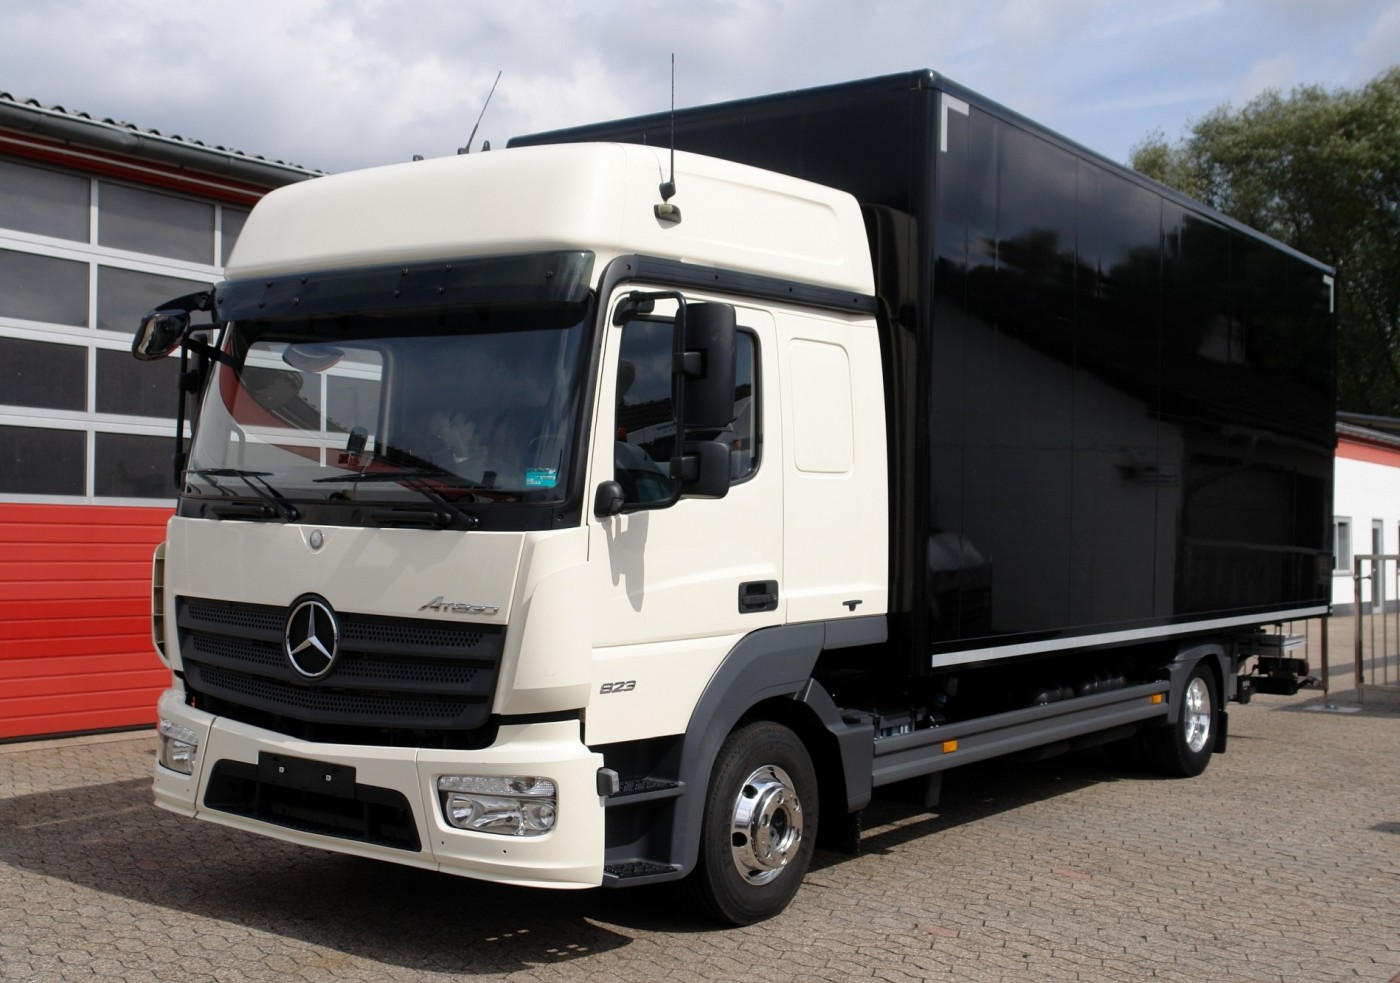 Mercedes-Benz - Atego 823L closed box 6,40m BigSpace cabin airco liftgate EURO6 new TÜV!